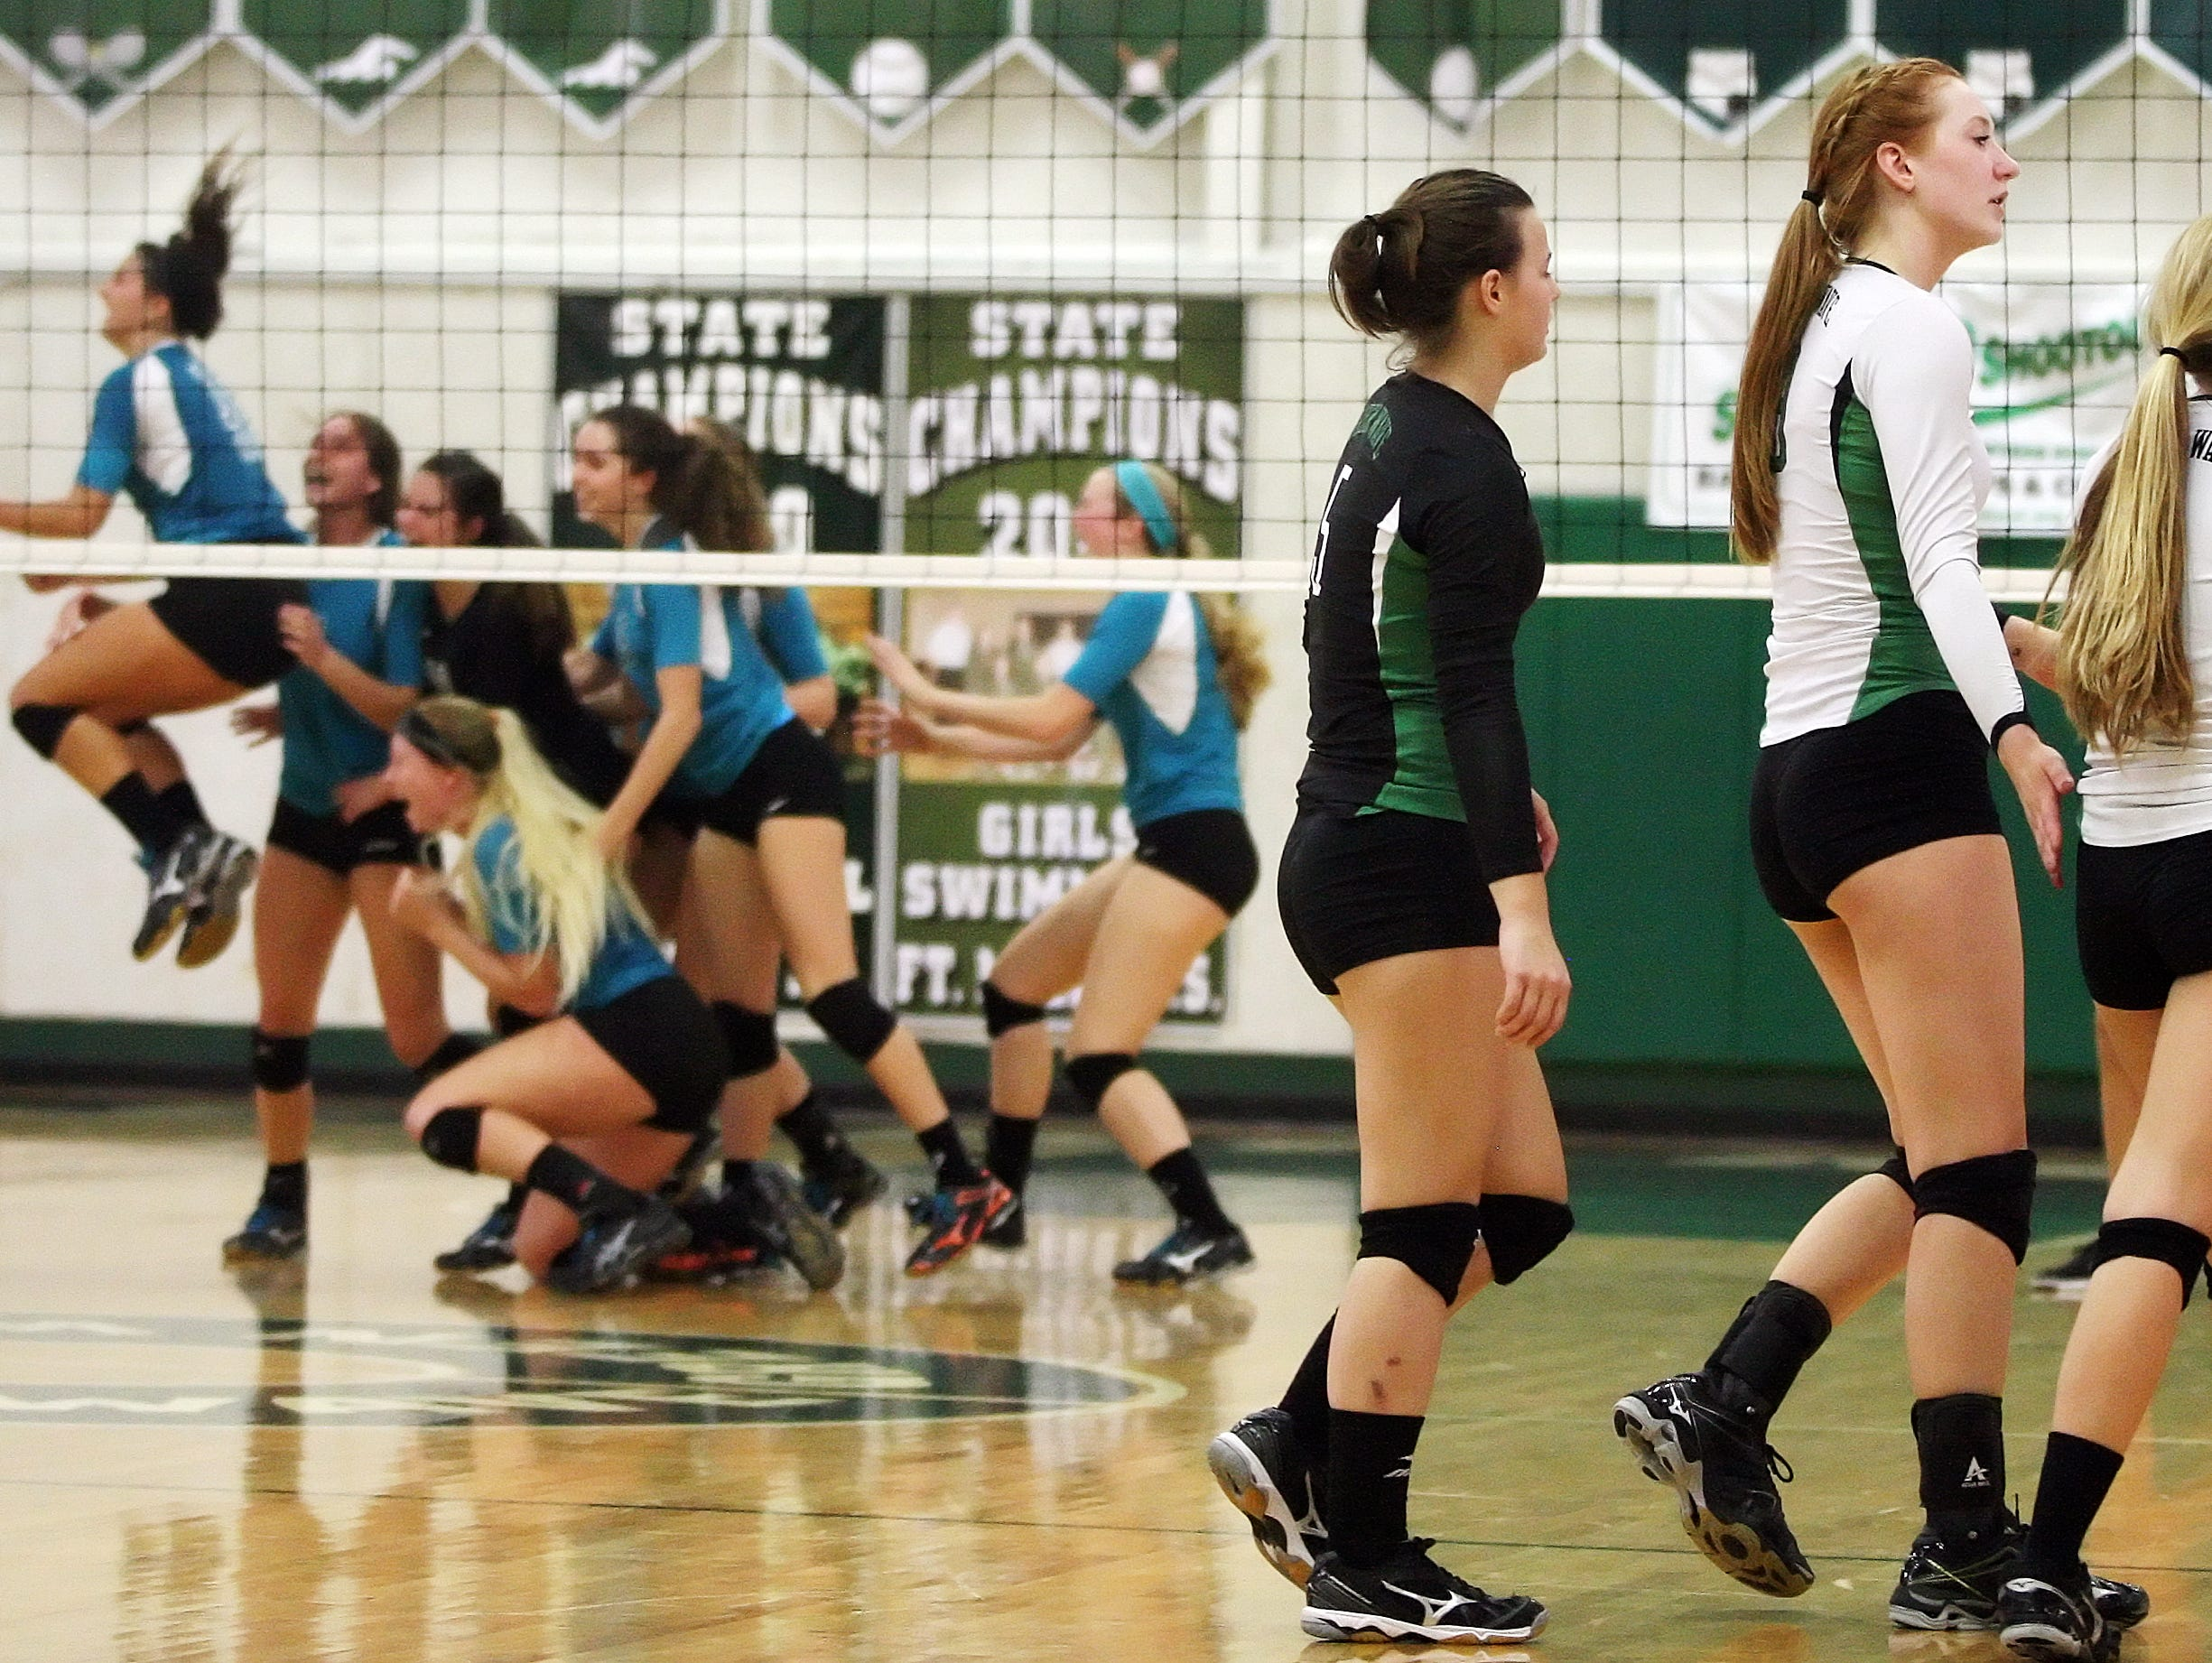 Fort Myers High School's Casey Adams, center, Kaitlin Stewart and Sydney Green leave the court as Jensen Beach celebrates winning the Class 6A volleyball semifinals Saturday at Fort Myers High School.